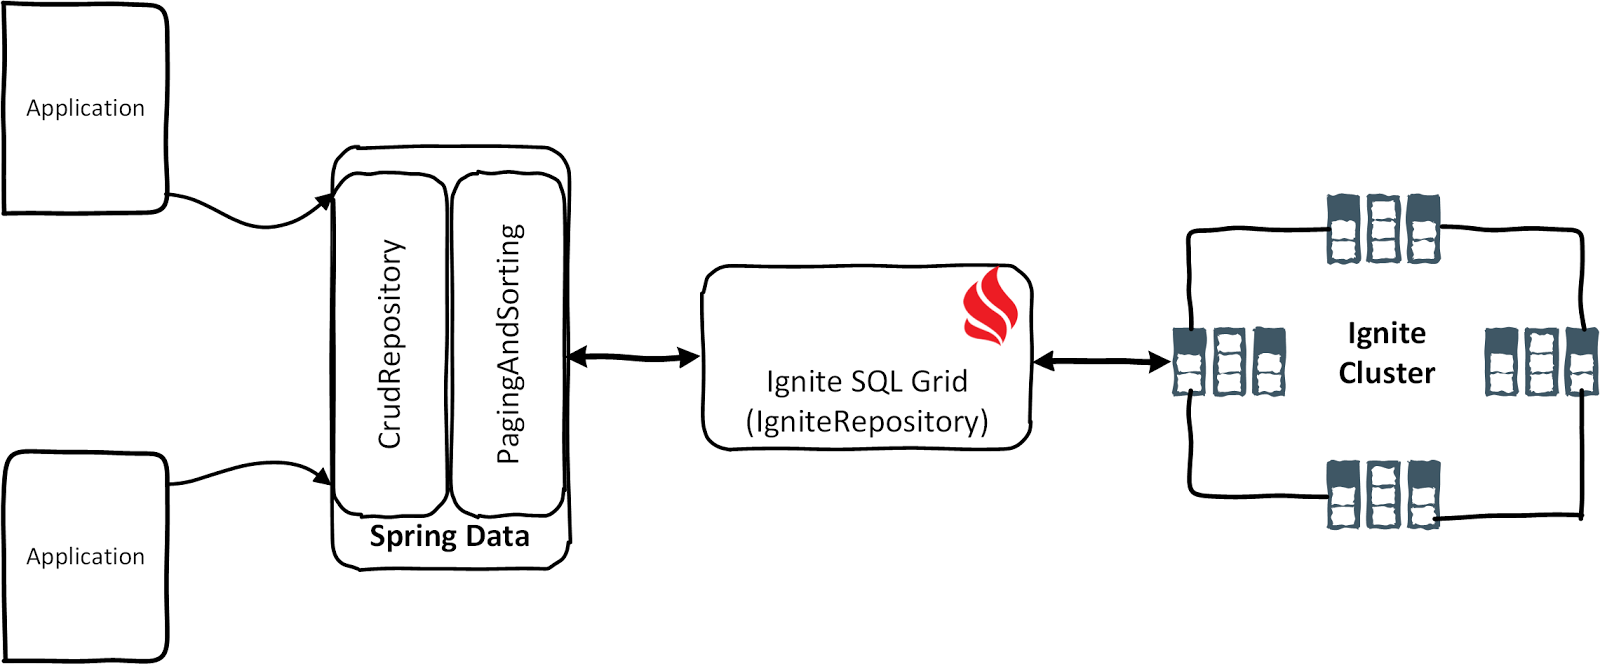 My Workspace Apache Ignite With Spring Data Bean Wiring Datas Repositories You Only Need To Write An Interface Finder Methods Query The Objects All Crud Method For Manipulating